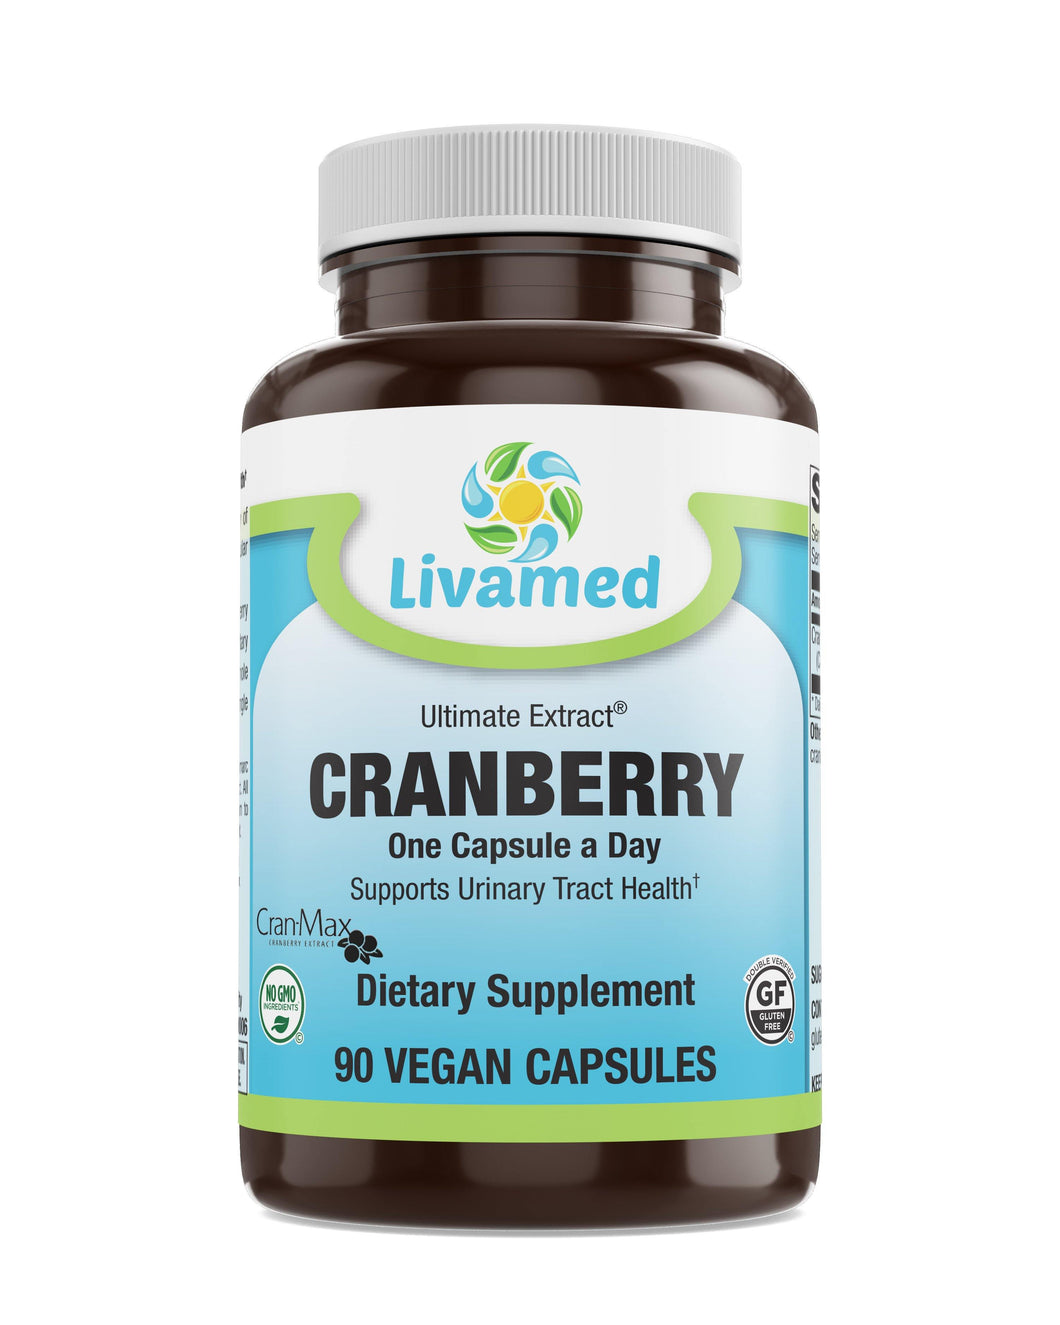 Livamed - Cranberry (Cran-Max®) Veg Caps 90 Count - Livamed Vitamins